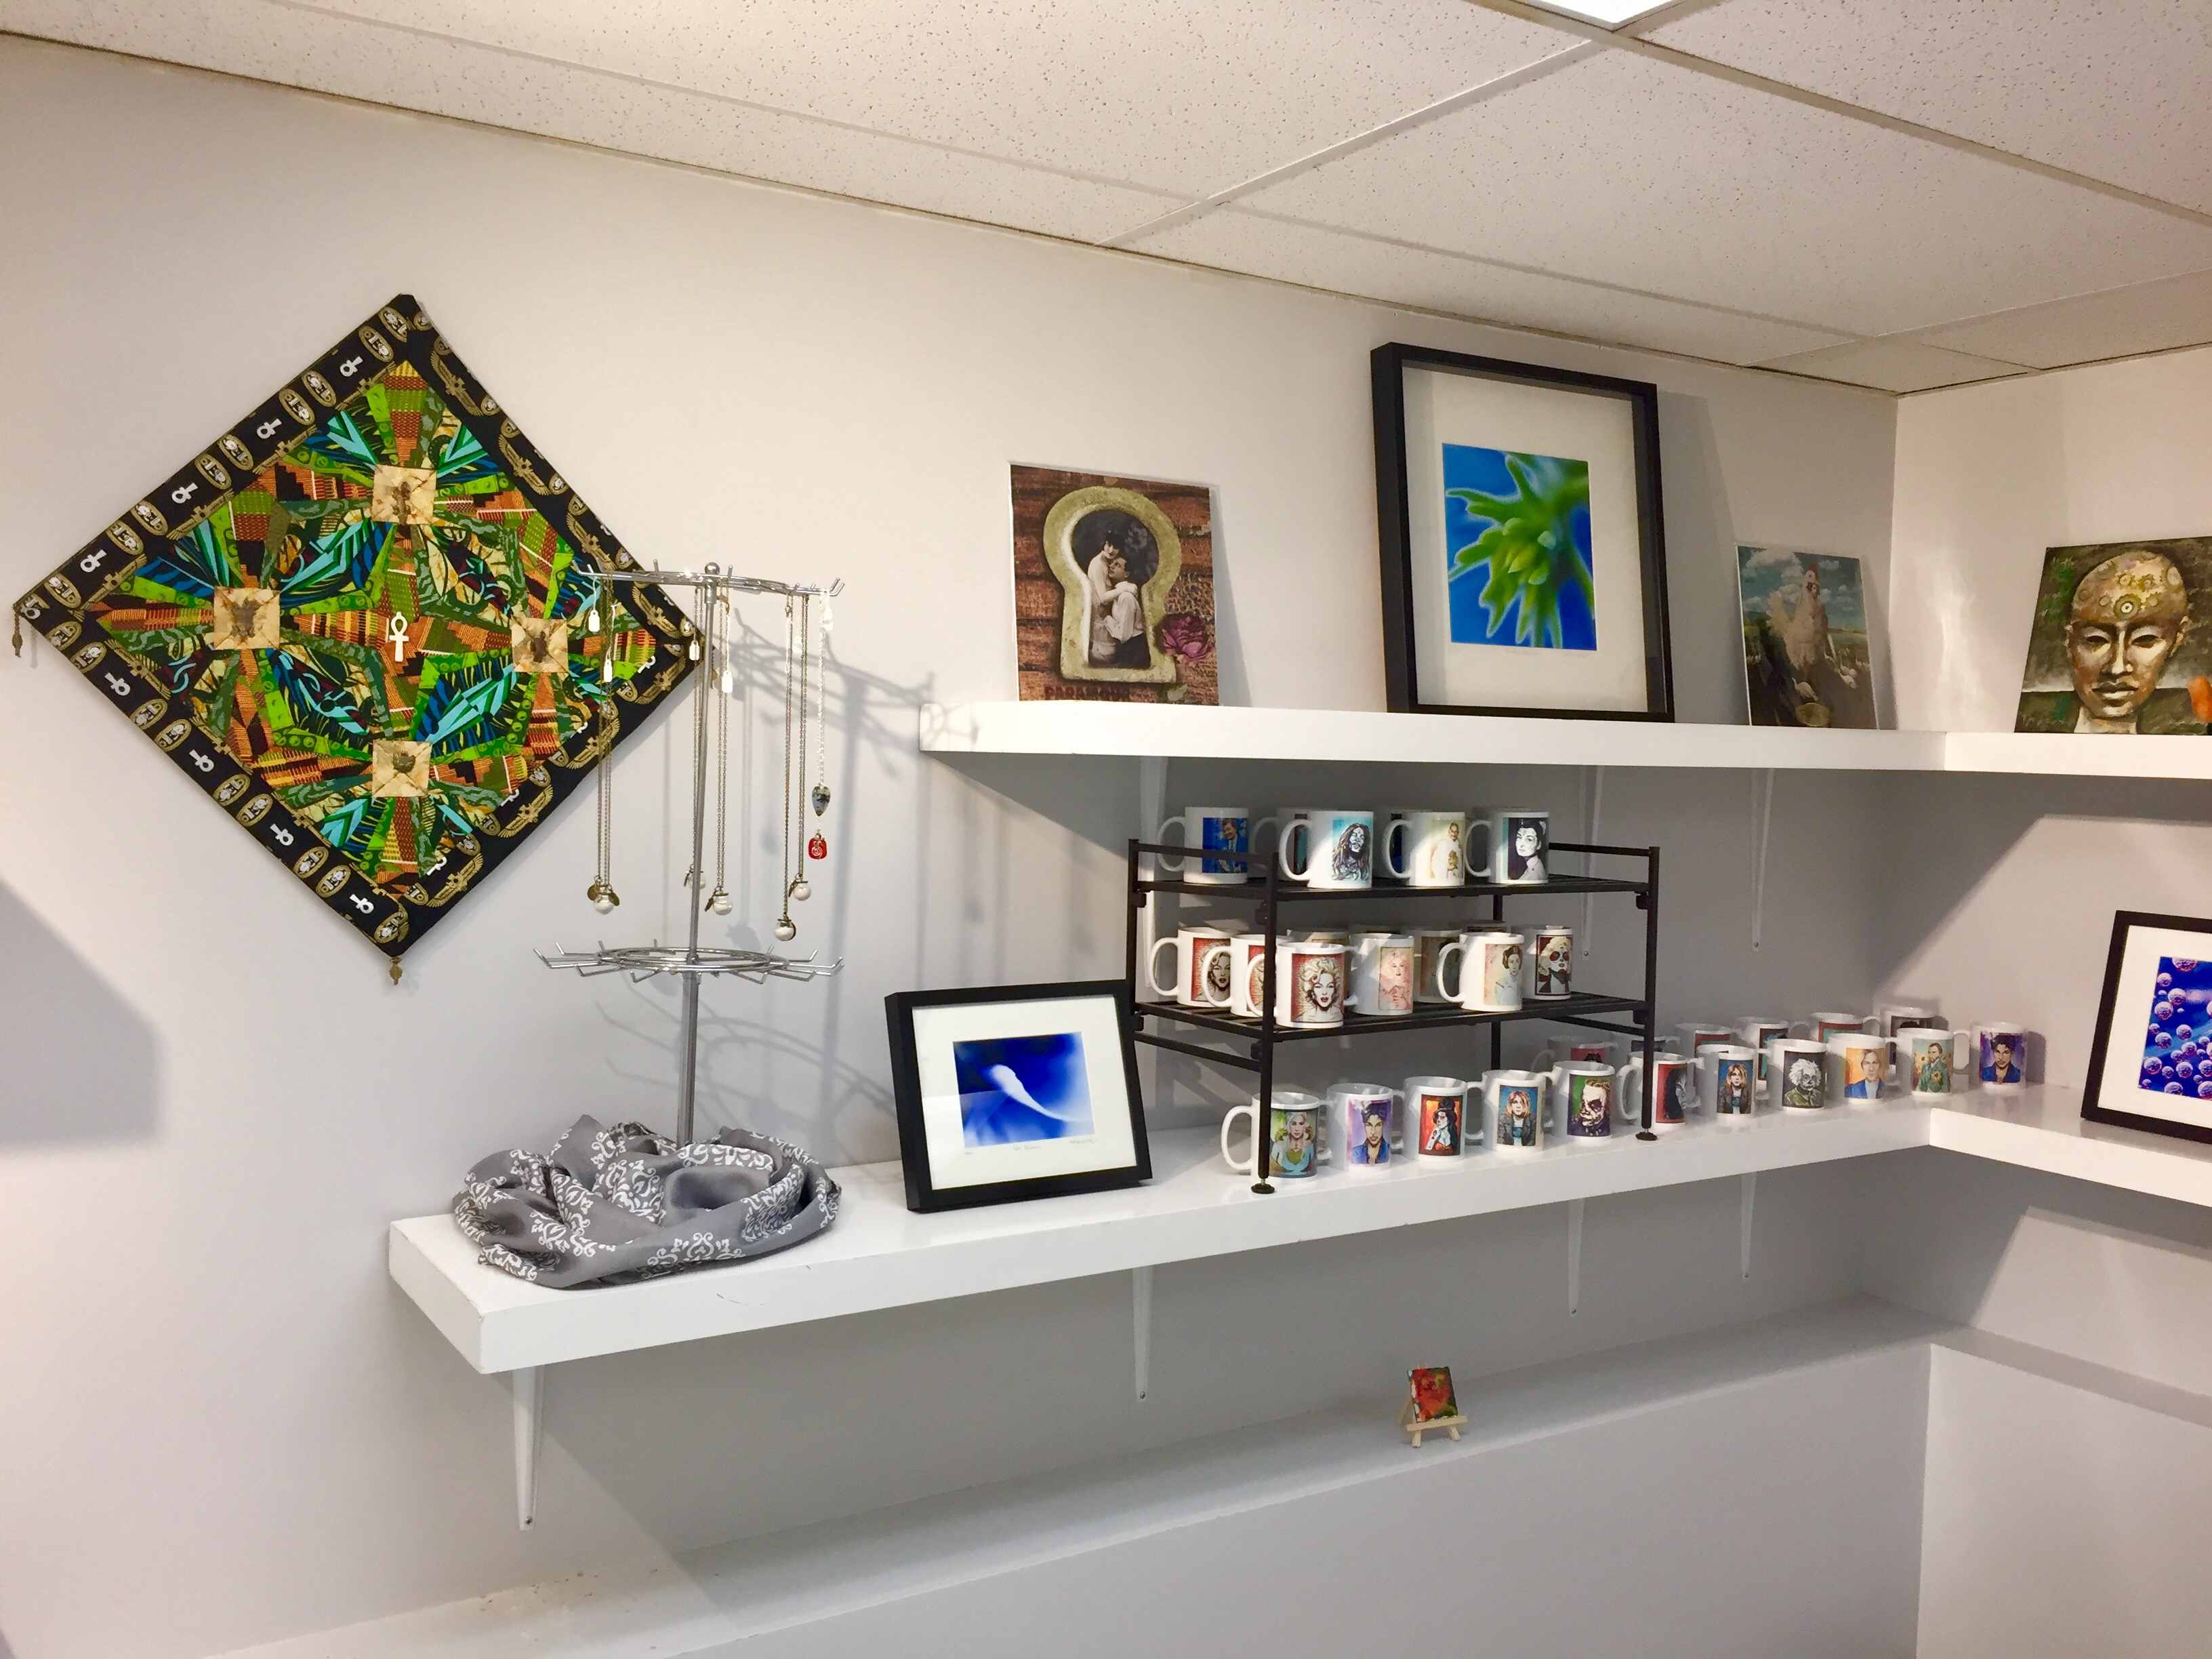 A view of the gift shop.